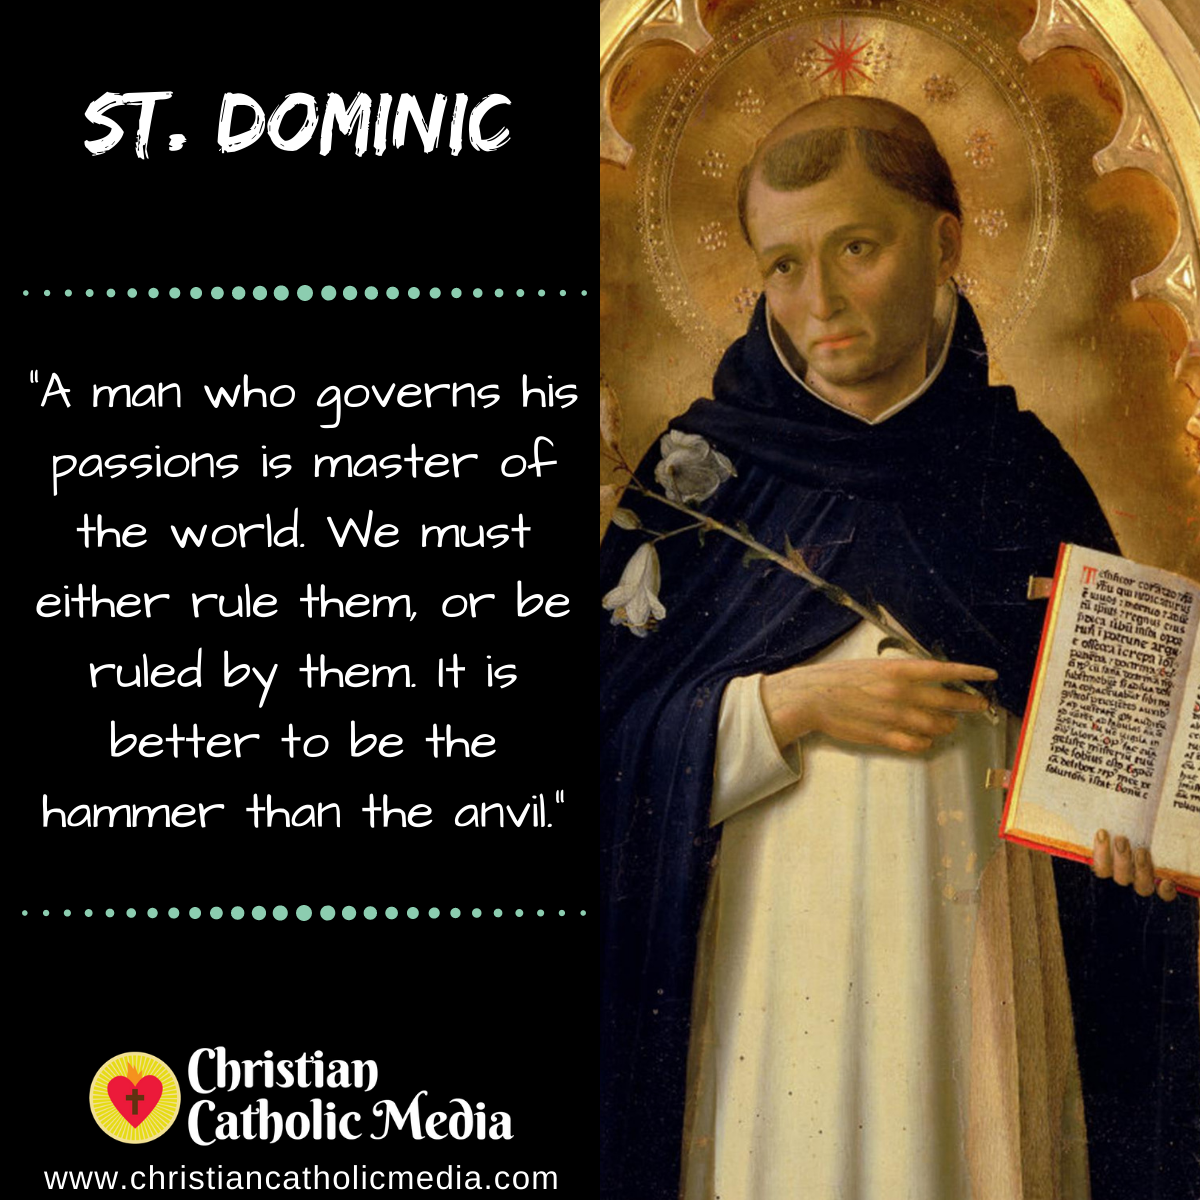 St. Dominic - Friday December 20, 2019